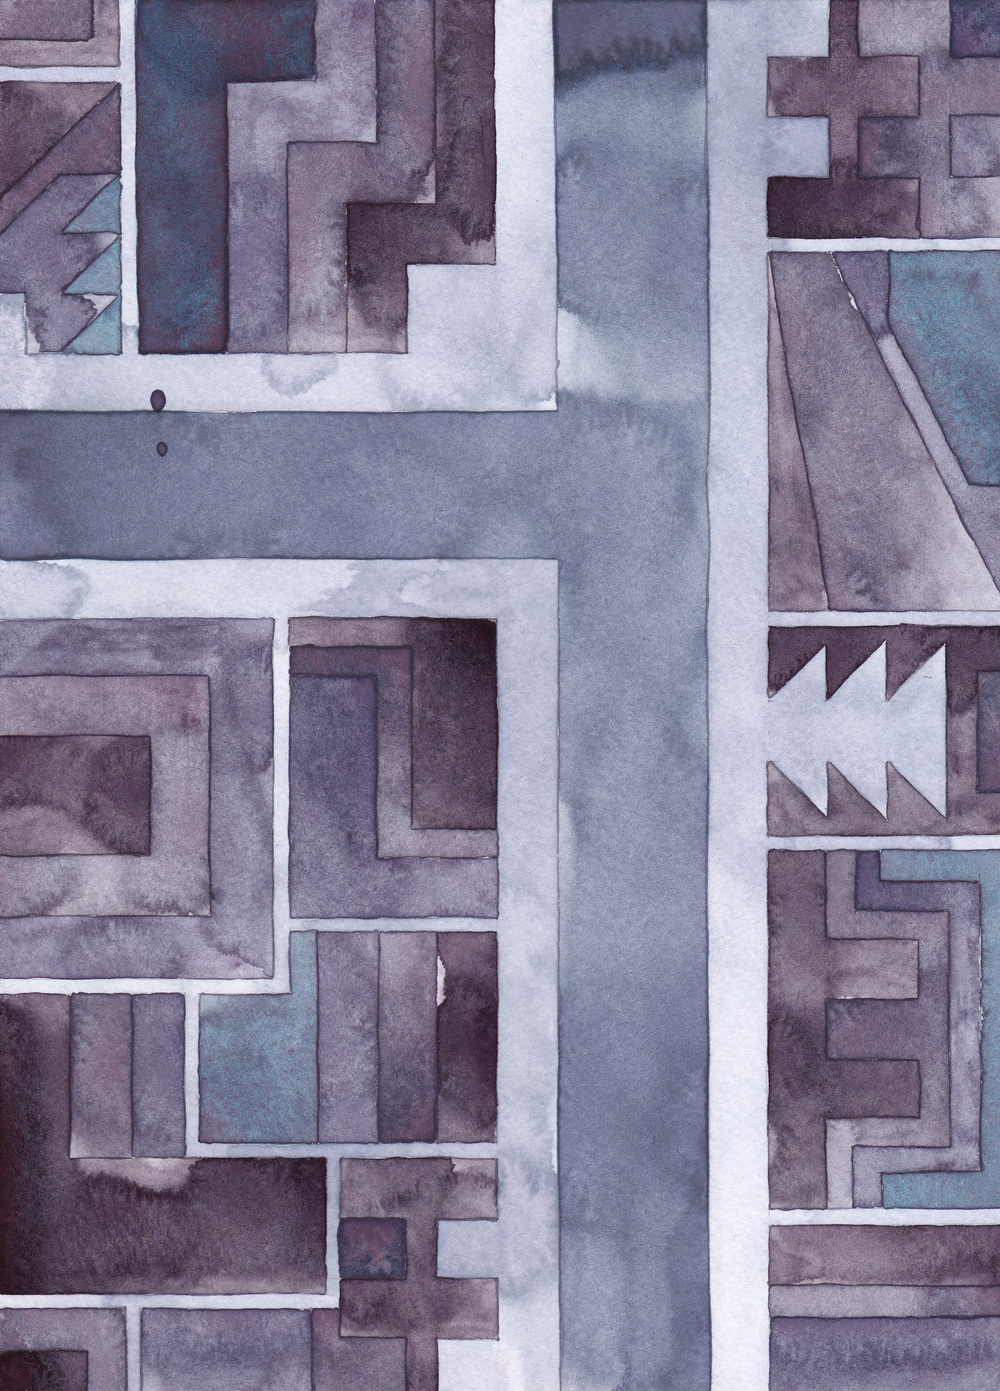 Cityscape 17, 2014 watercolor on watercolor paper 11 ¾ x 8 ½  inches